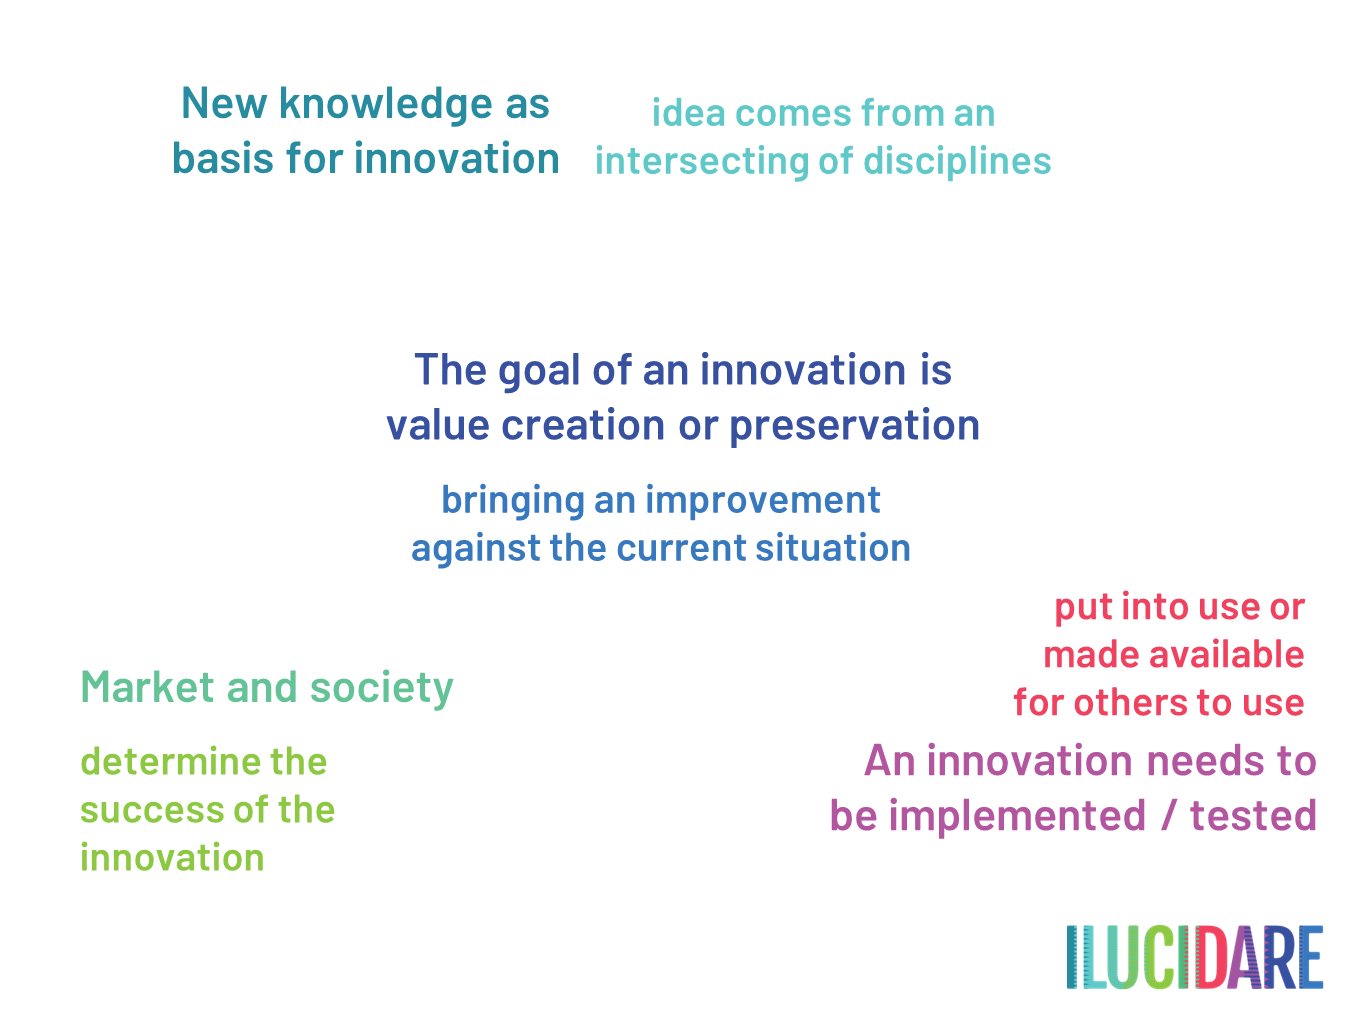 ILUCIDARE definition heritage-led innovation